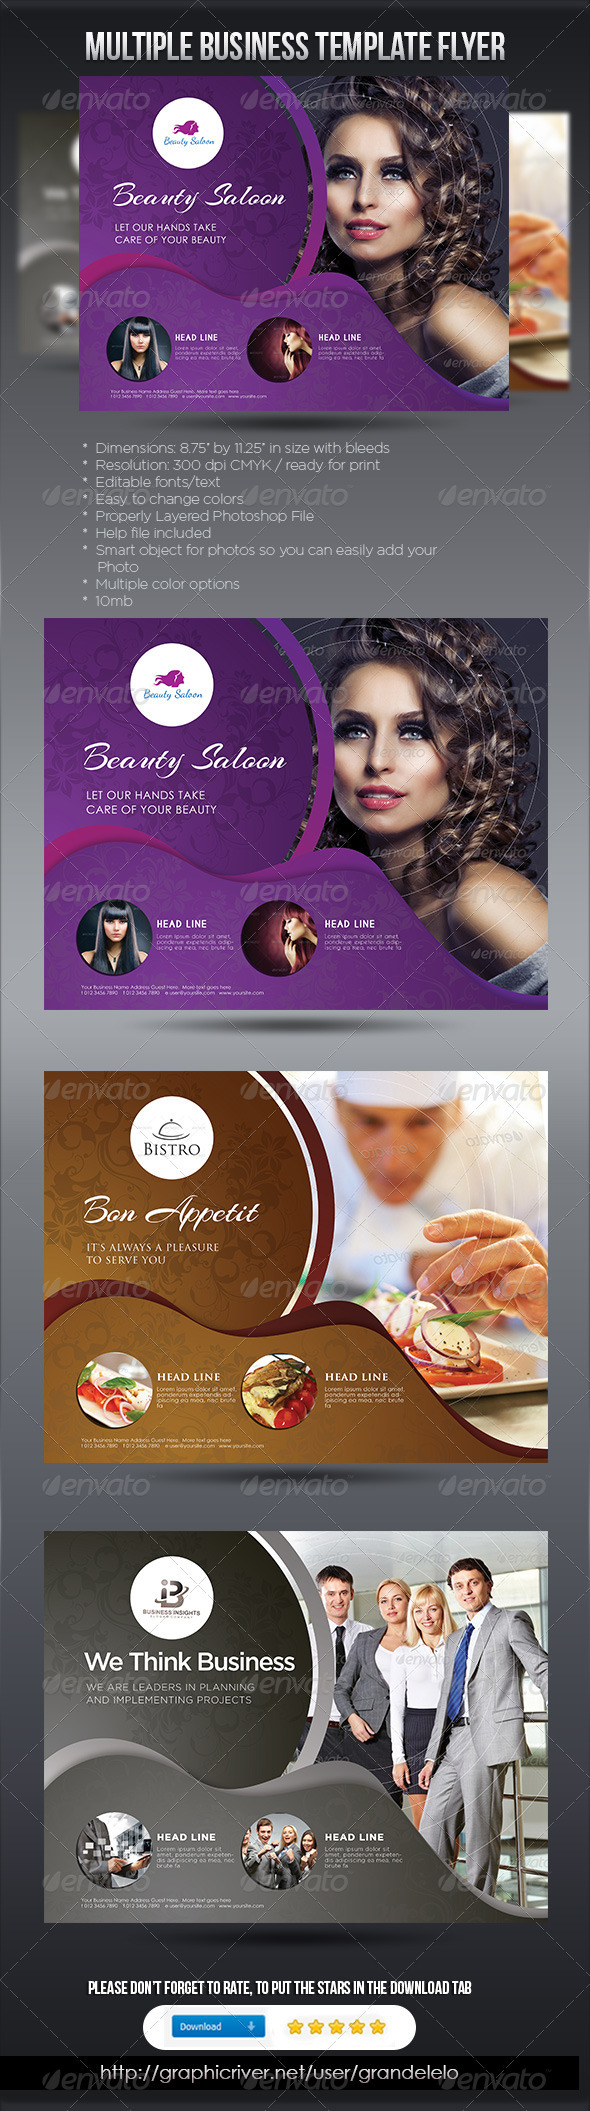 Multiple Business Template Flyer - Corporate Flyers